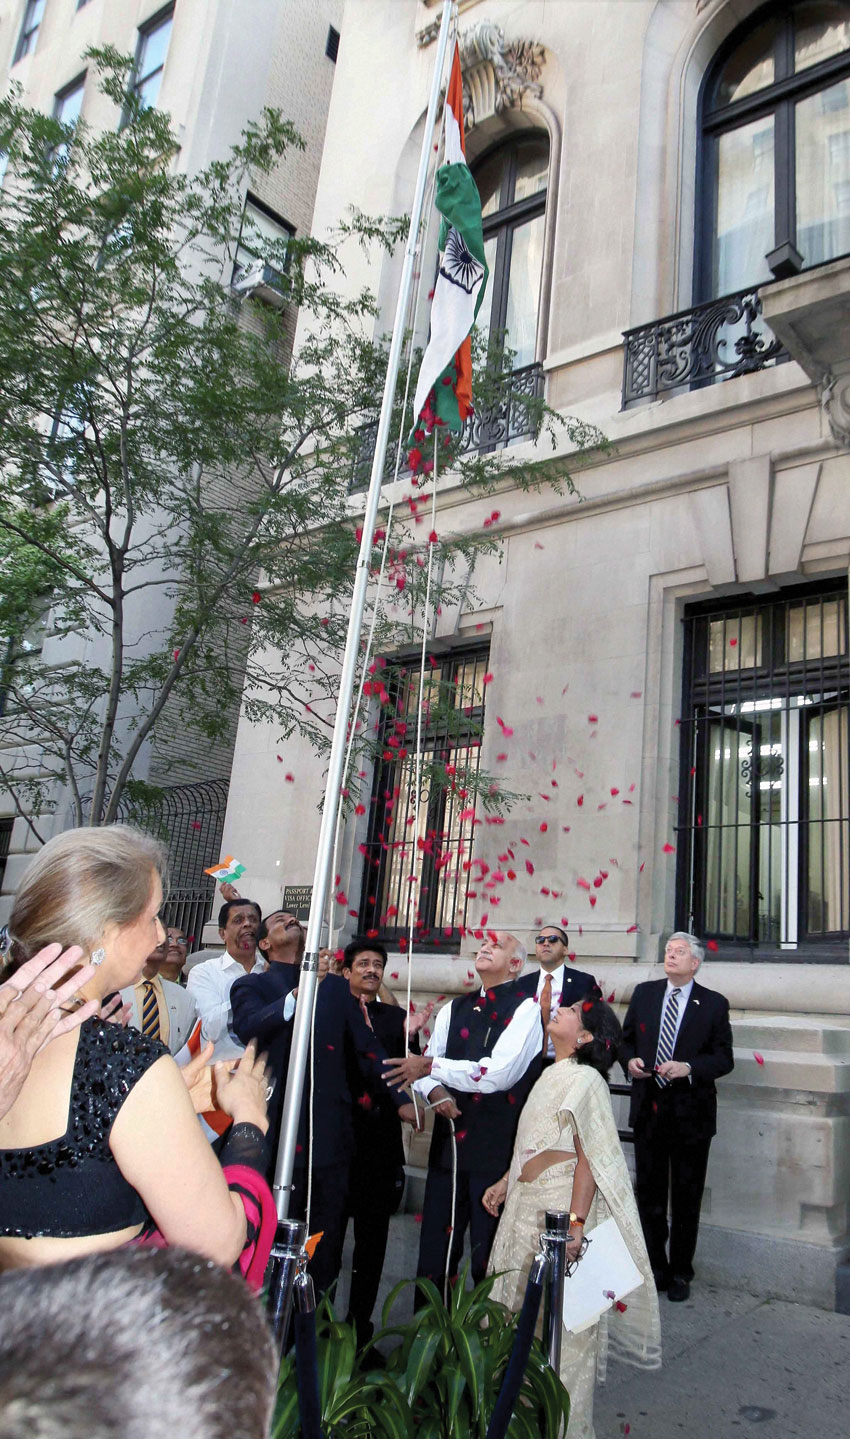 MOS External Affairs Minister M.J. Akbar hoists the Tricolor flag on the occasion of India's 70th Independence Day in New York, Aug. 15. (Press Trust of India)